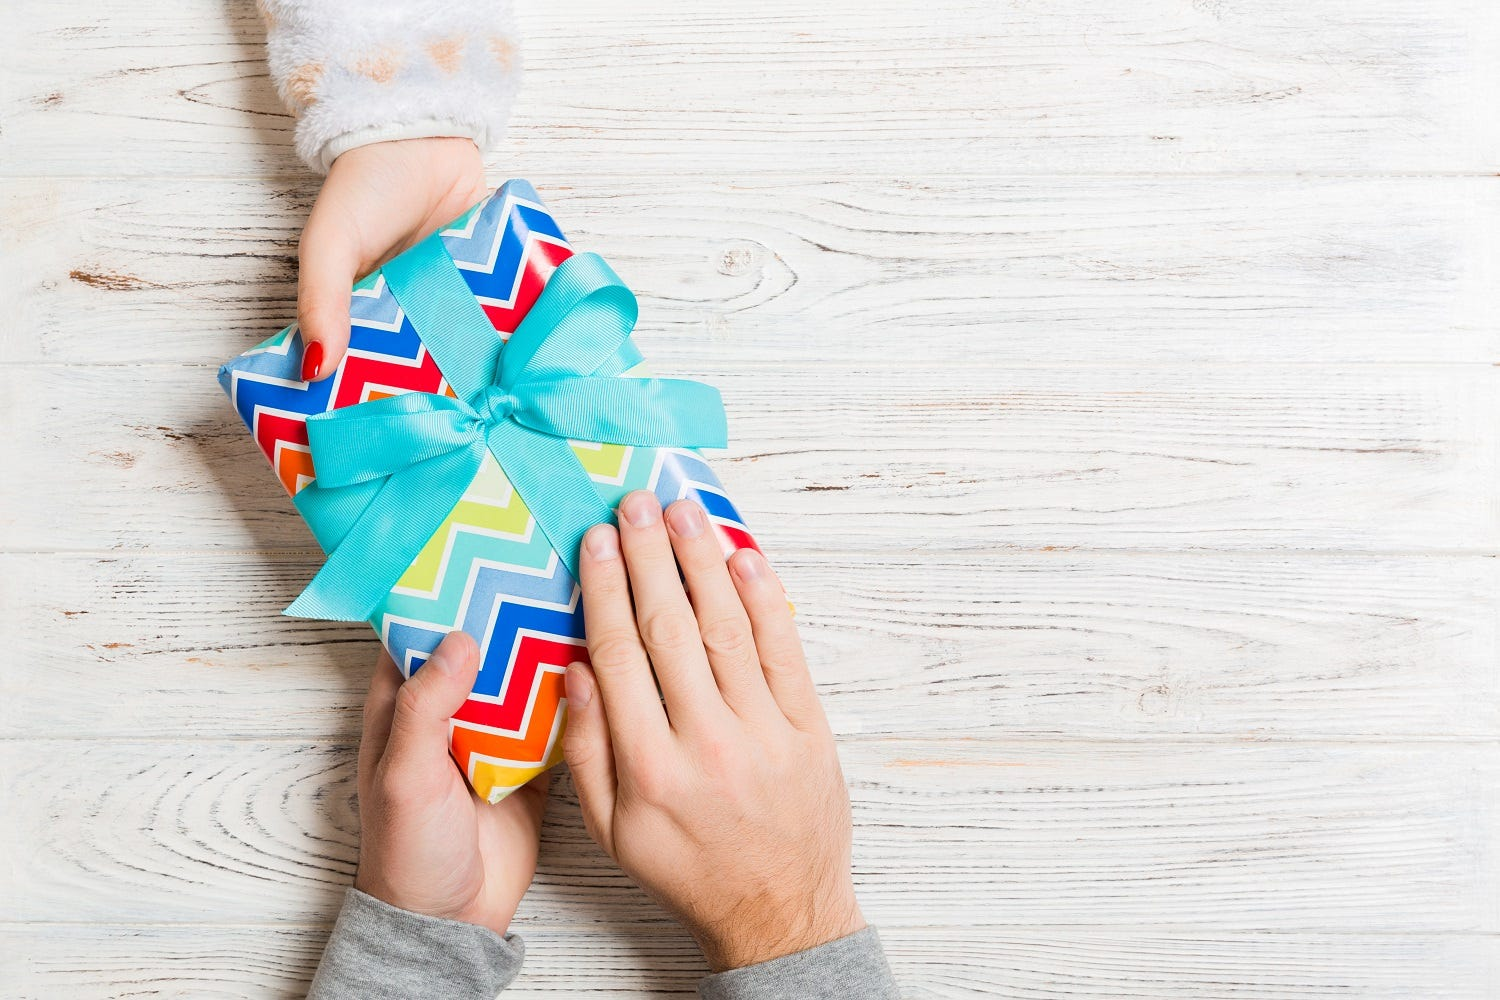 The ultimate gifting guide: Diwali gift hampers everyone will love